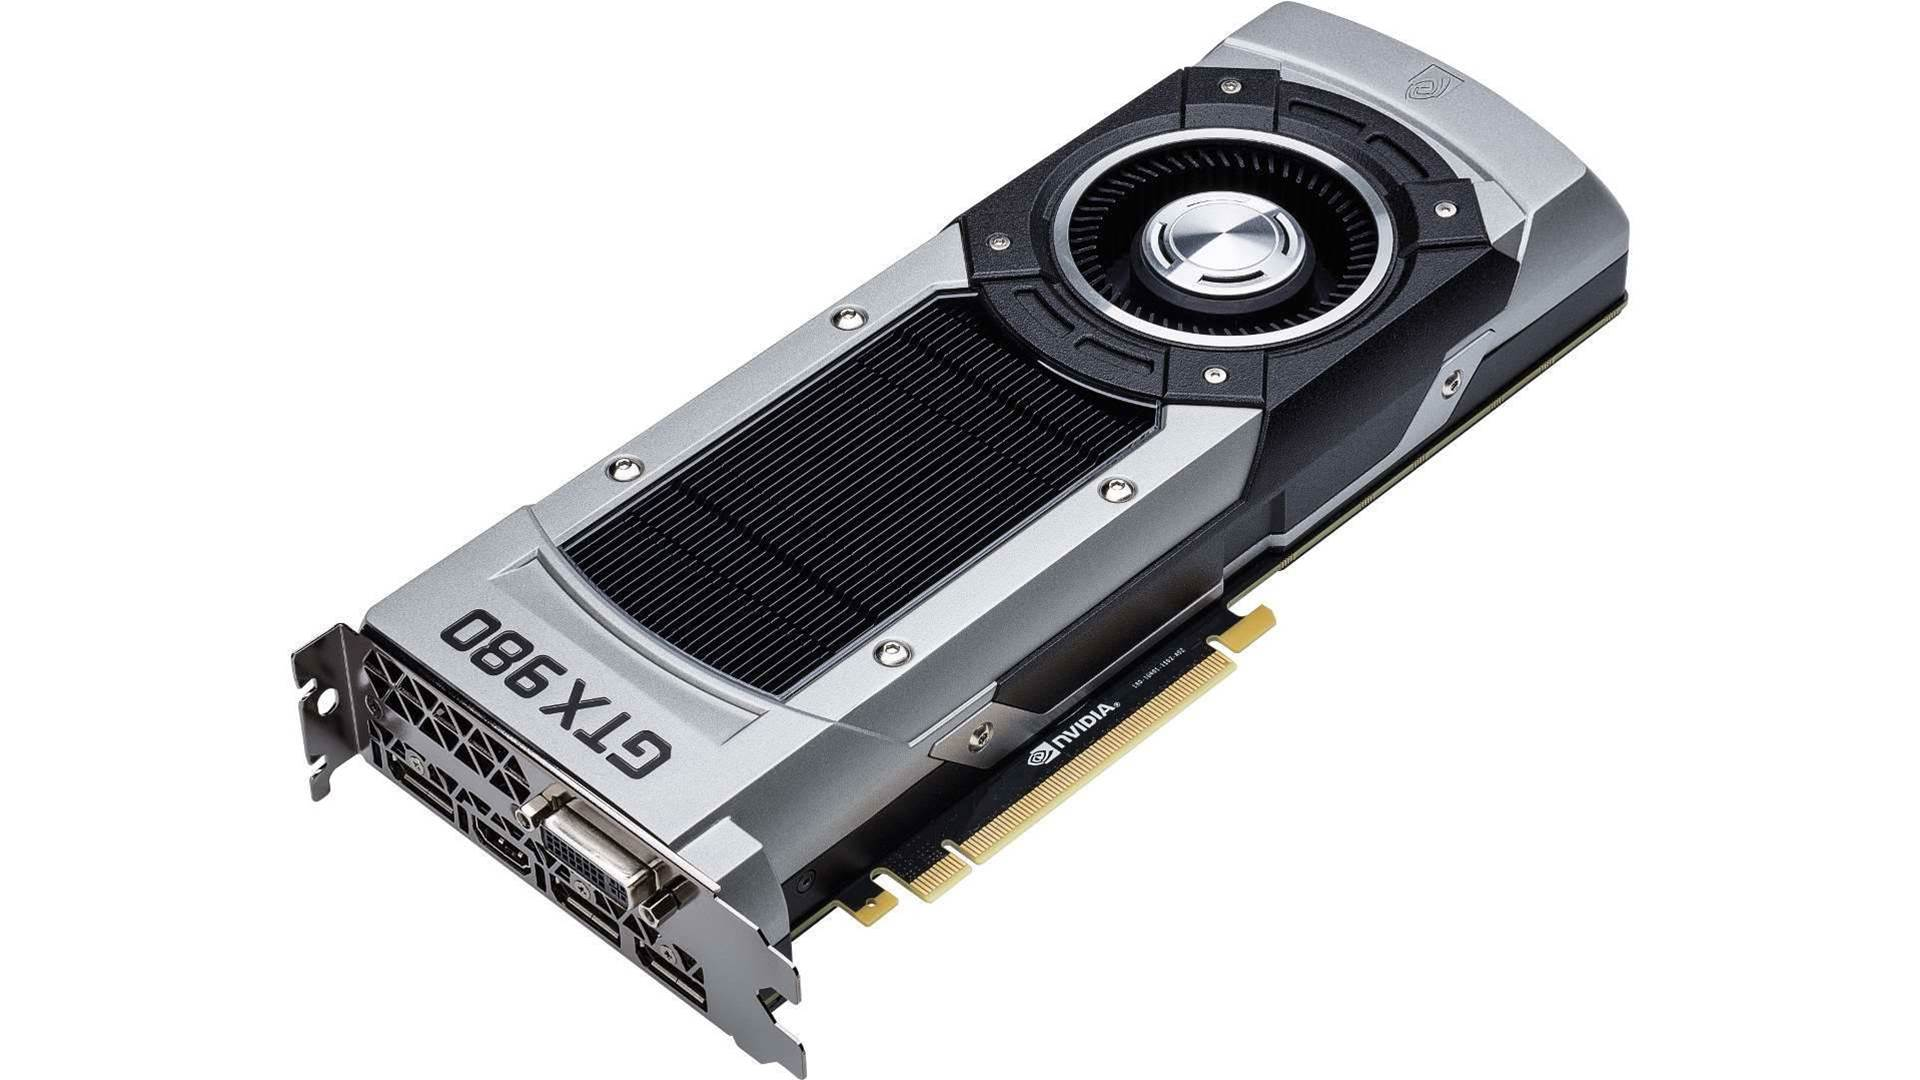 NVIDIA launches super efficient GTX 980 and GTX 970